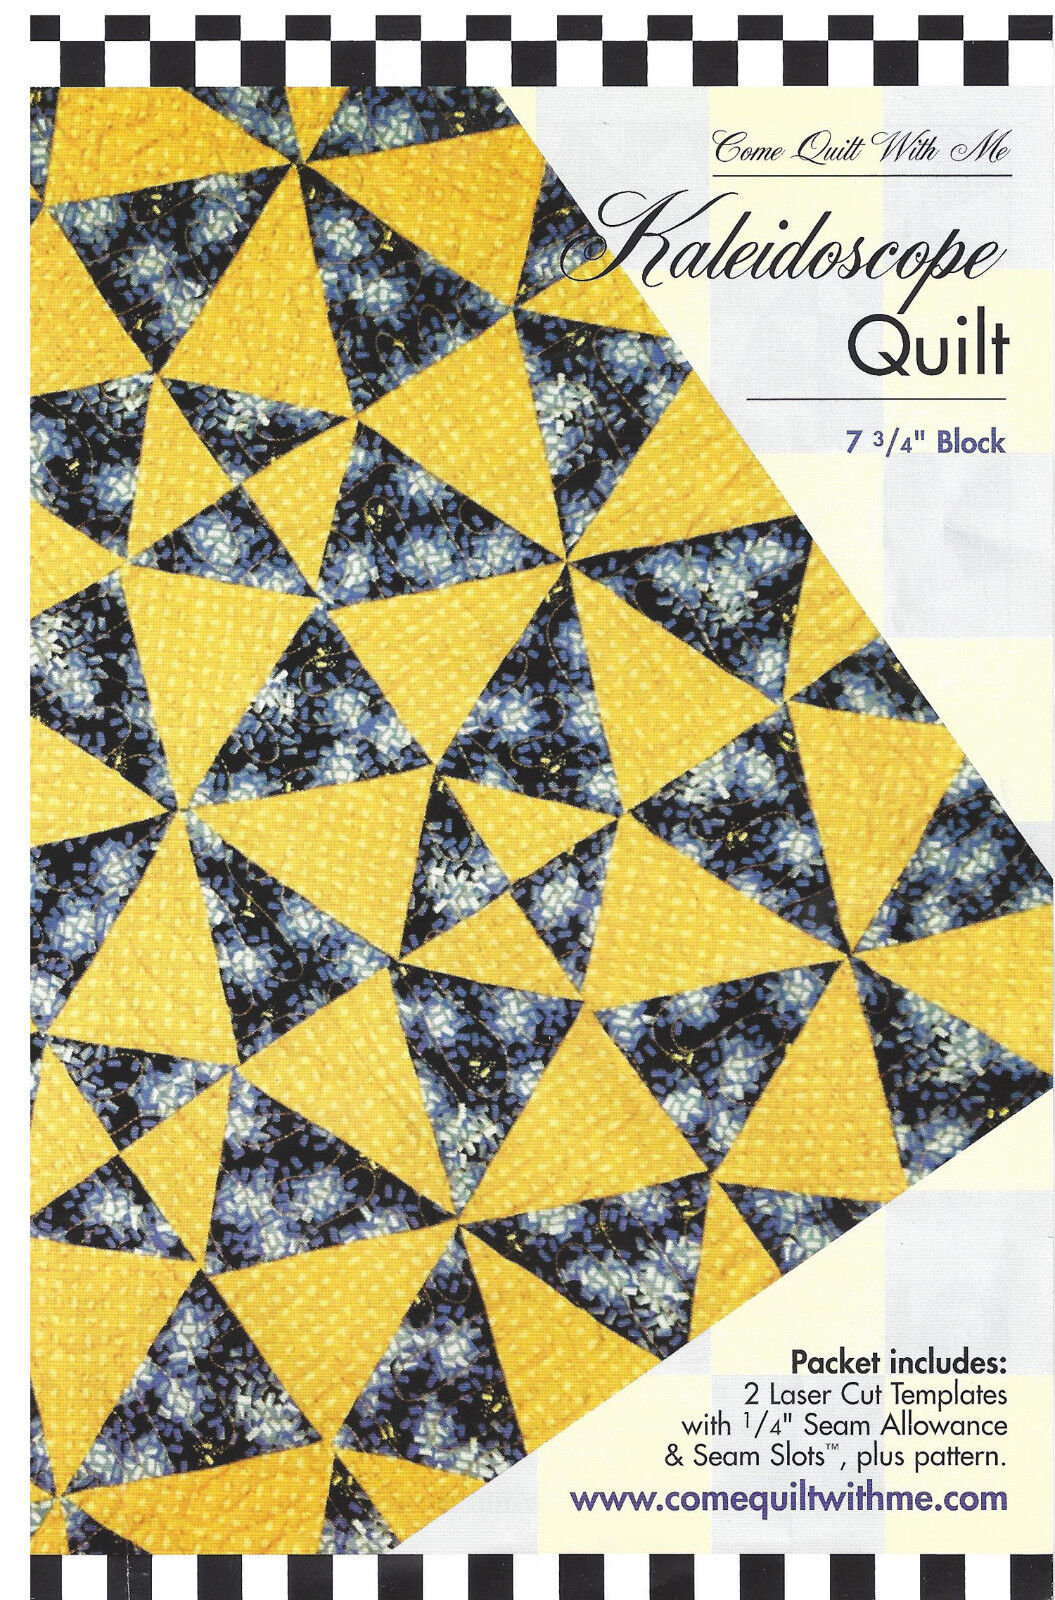 Acrylic Template Kaleidoscope by Come Quilt With Me - 2 Laser Cut ...